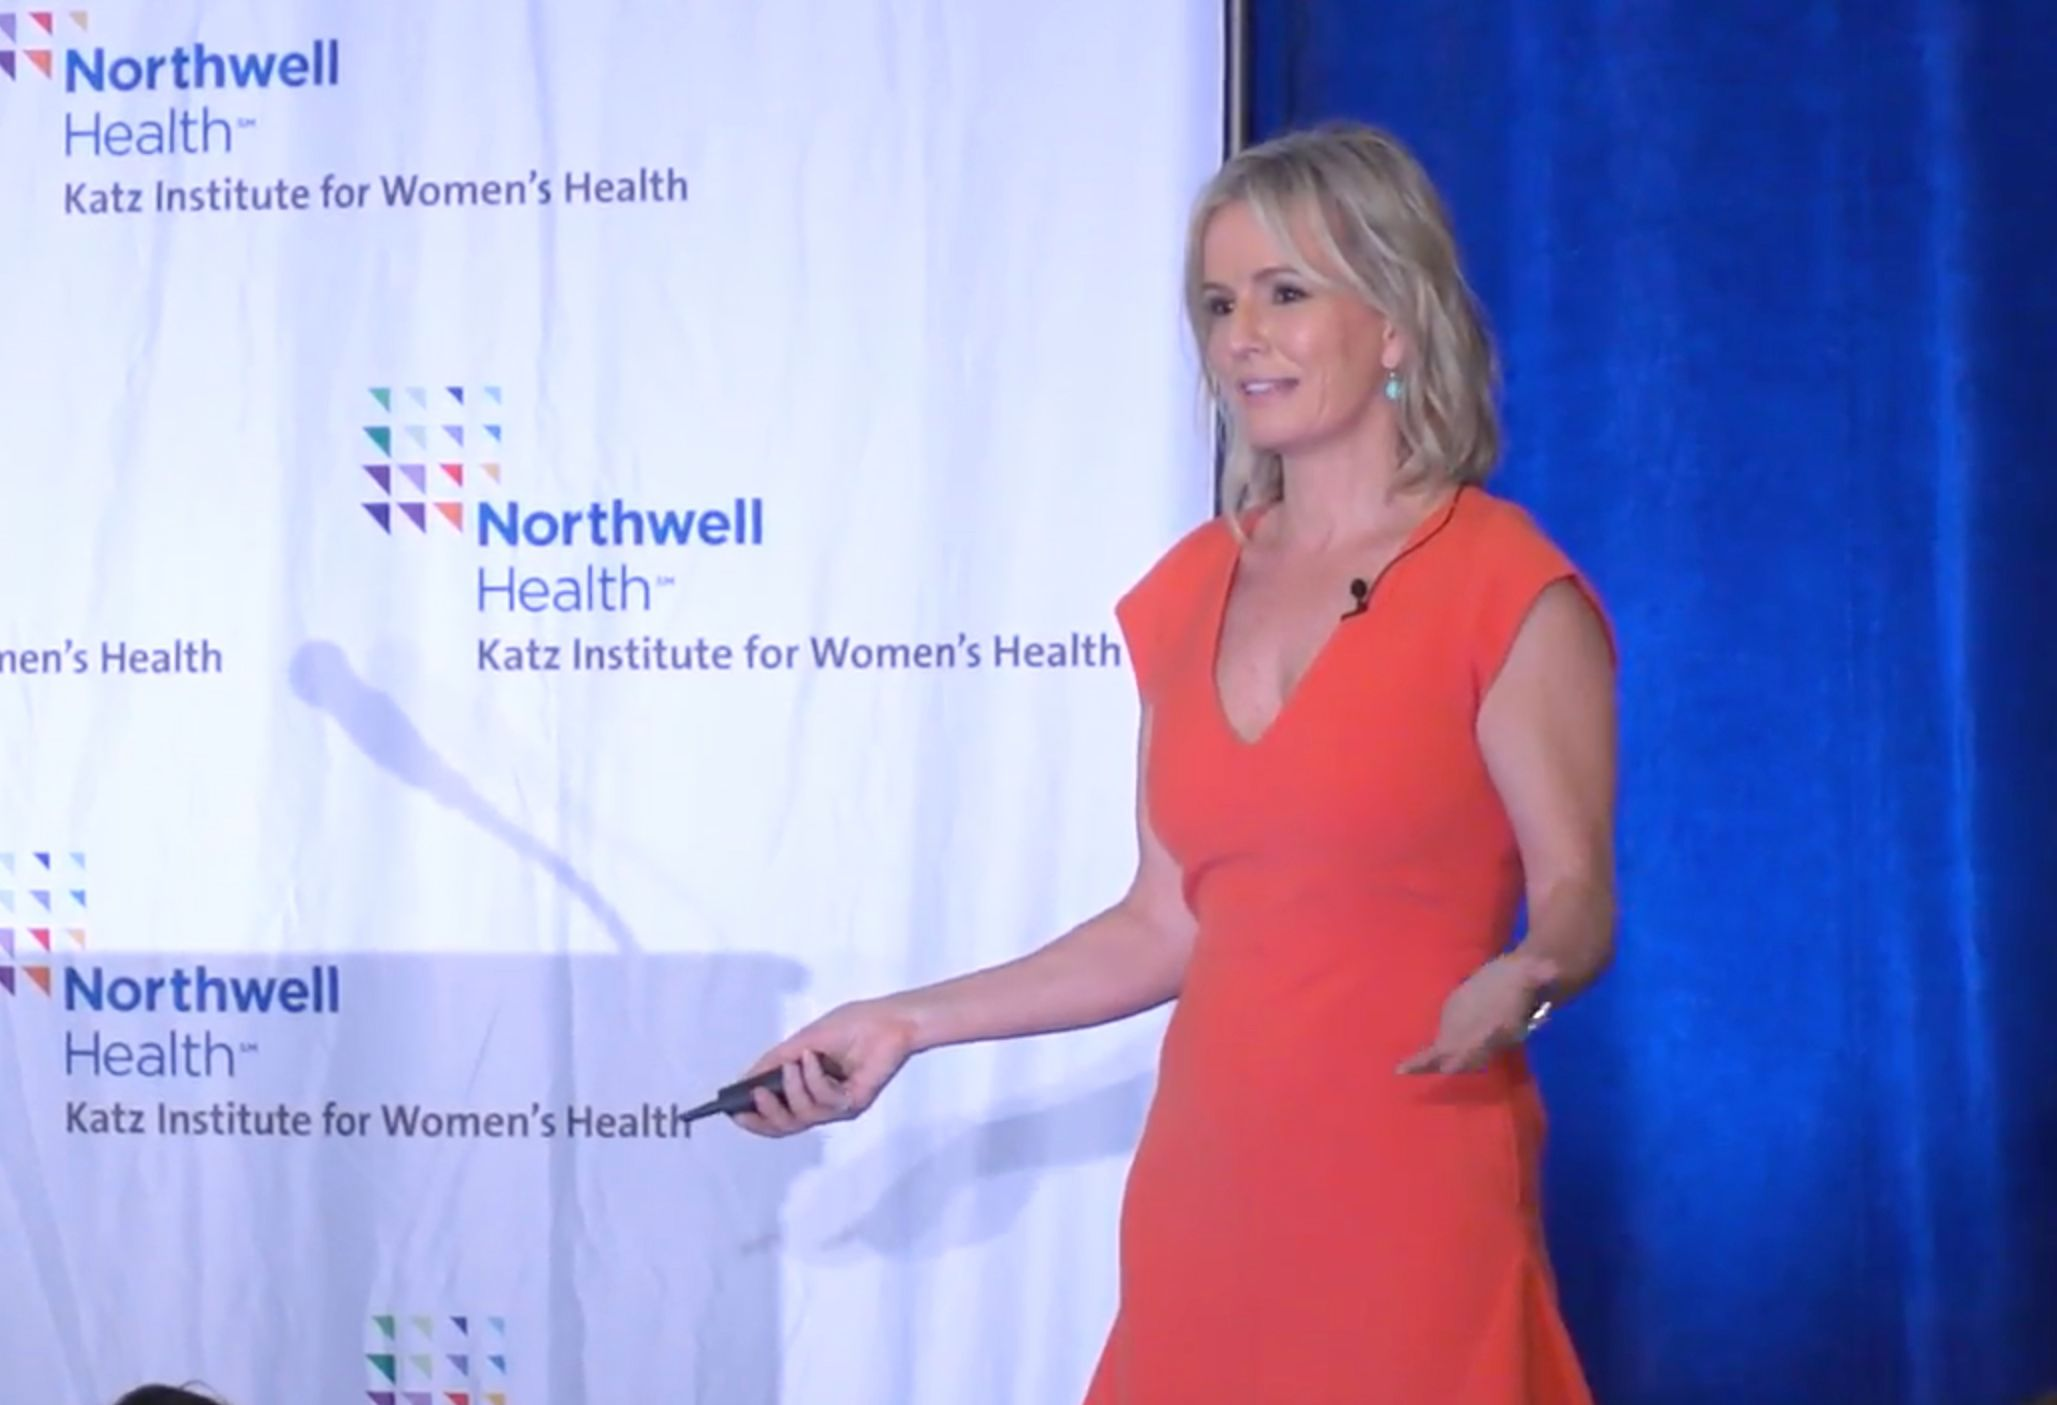 Dr Ashton speaking at a women's health conference.